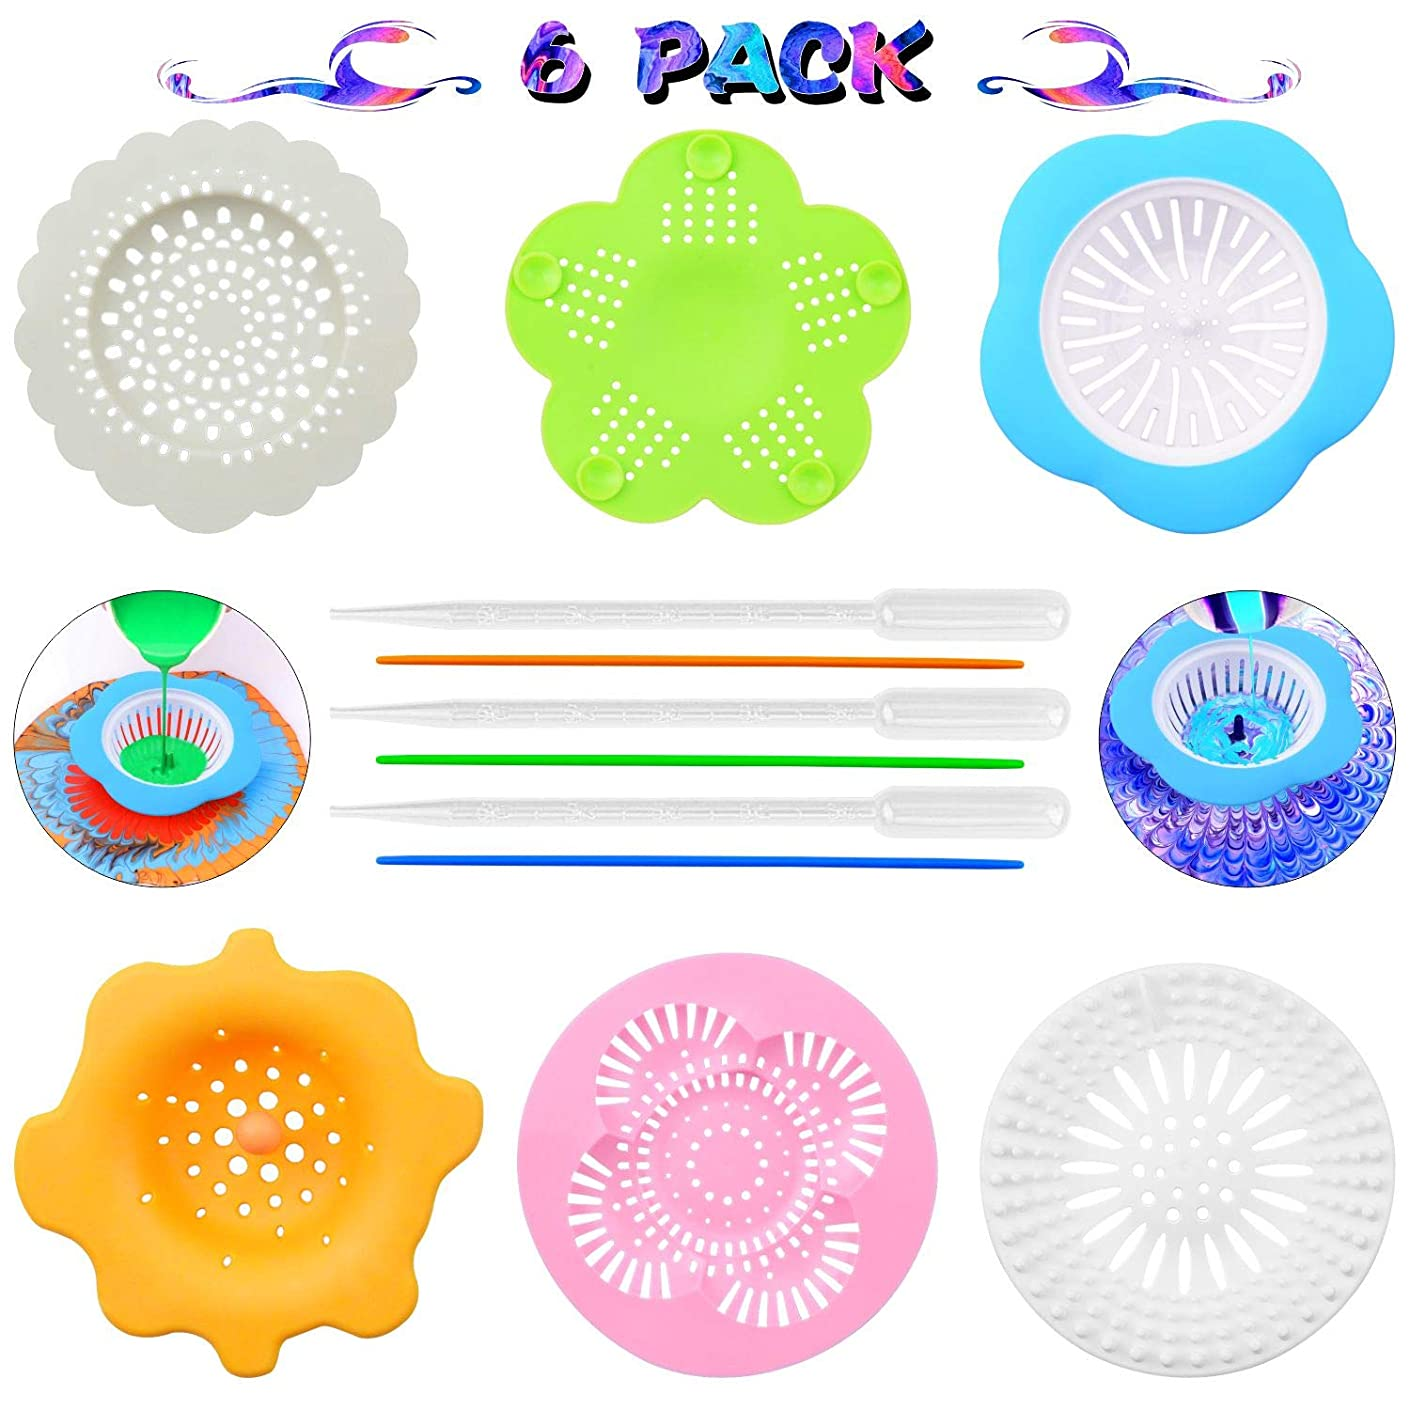 Acrylic Pouring Strainers, 6 Pack Plastic Silicone Paint Pouring Strainers for Pouring Acrylic Paint and Creating Unique Patterns and Designs, Art Supplies